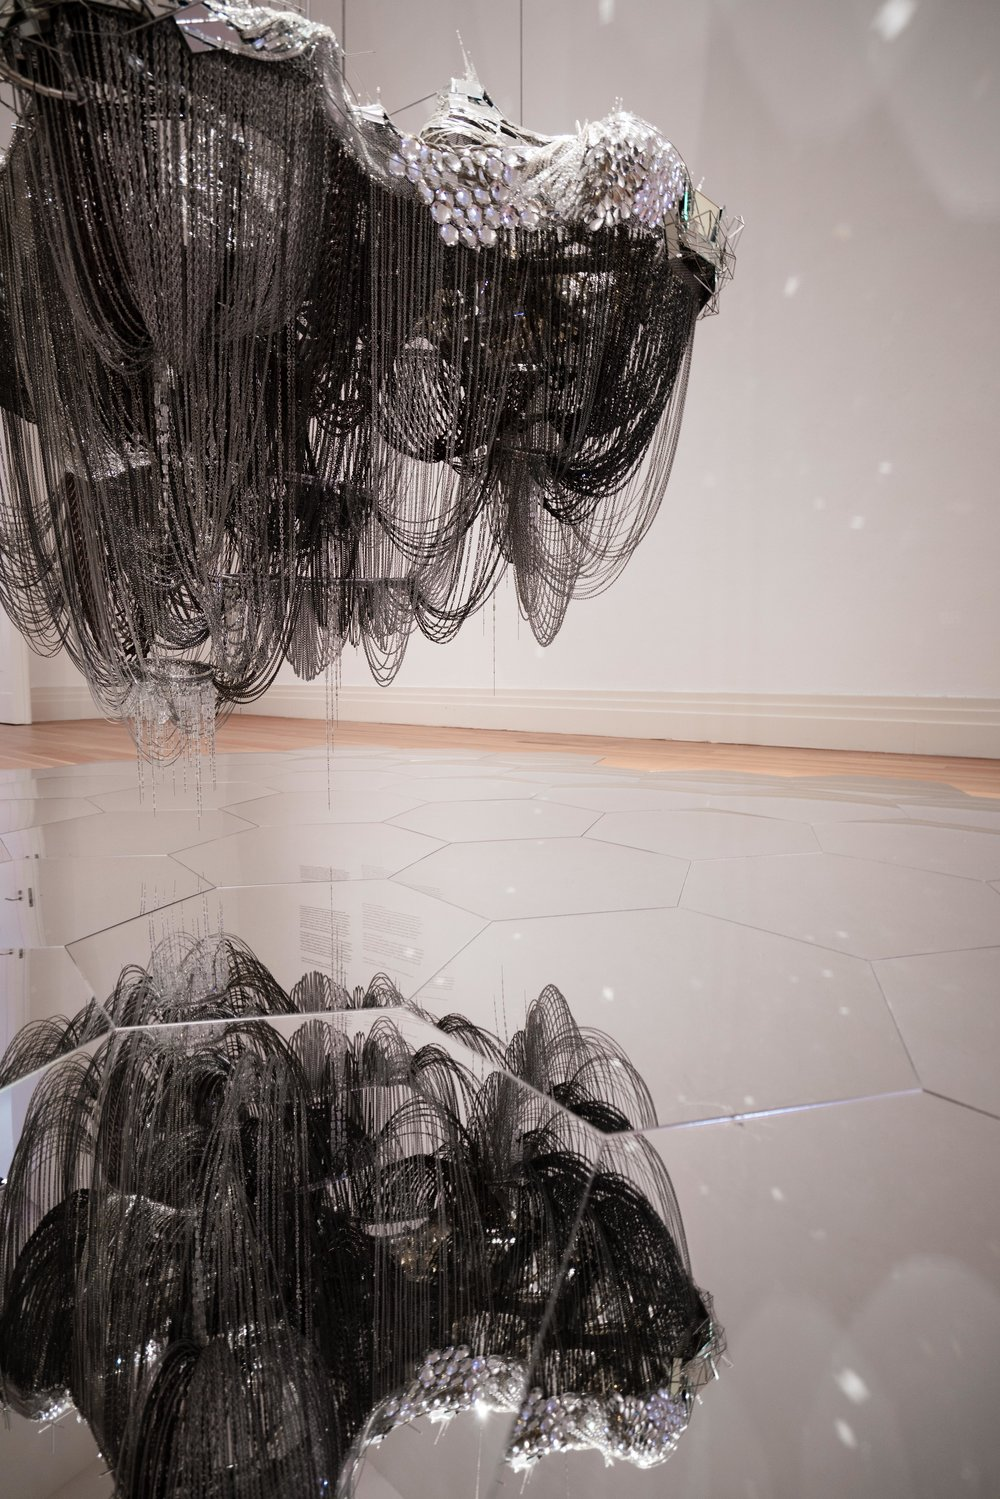 181117_Lee Bul_Crash, Martin-Gropius-Bau_06.jpg